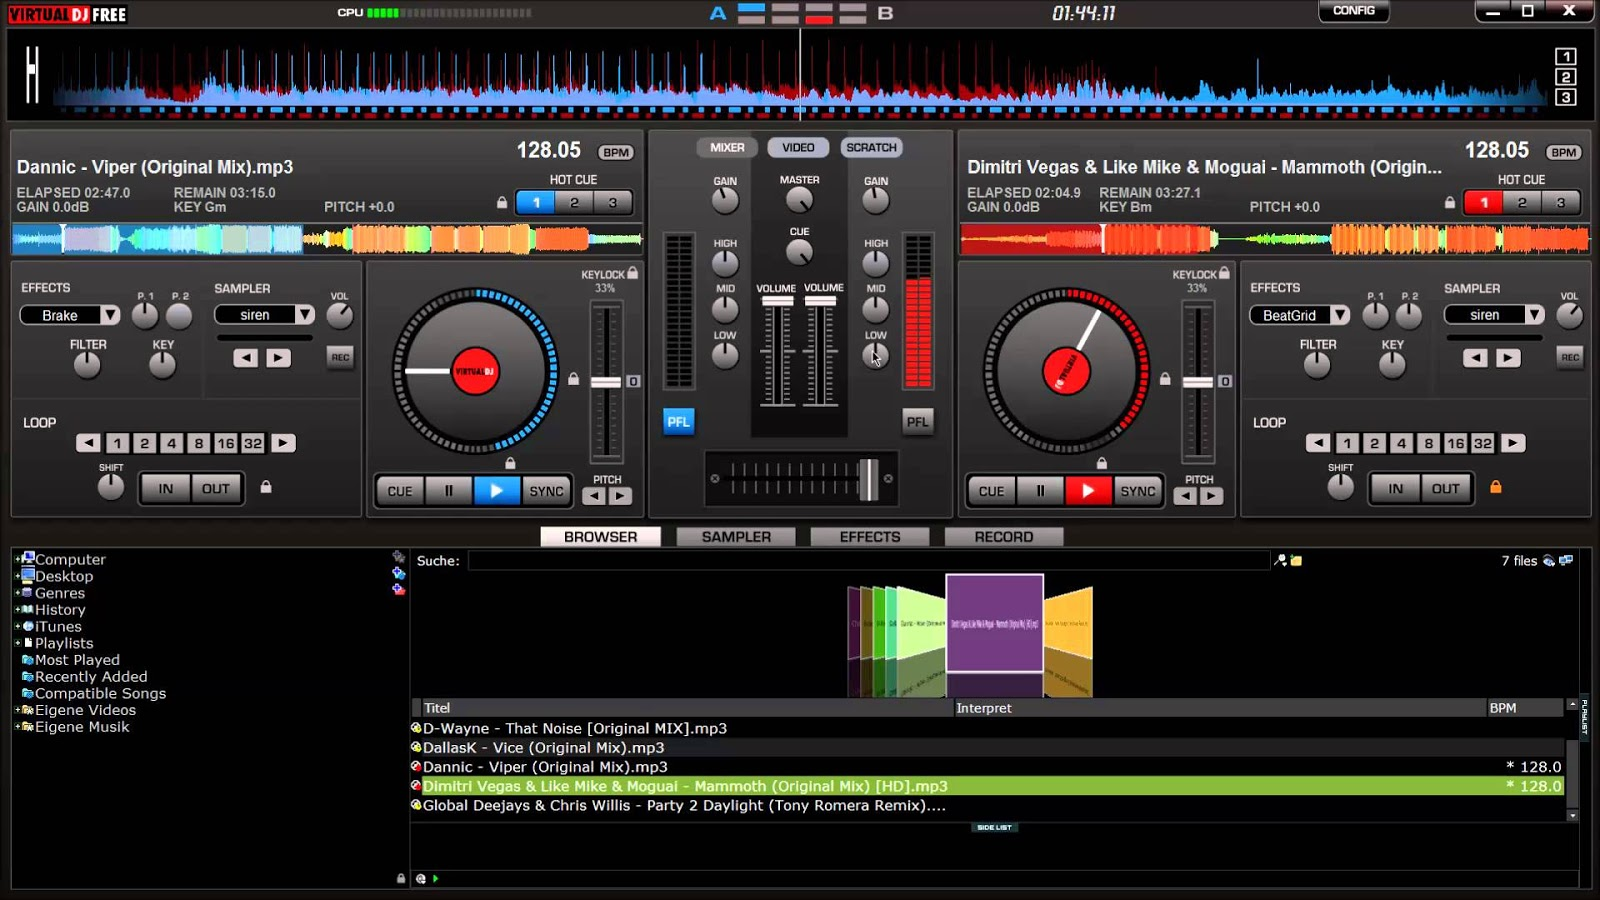 virtual dj free download full version 9 - Sol de Terrace